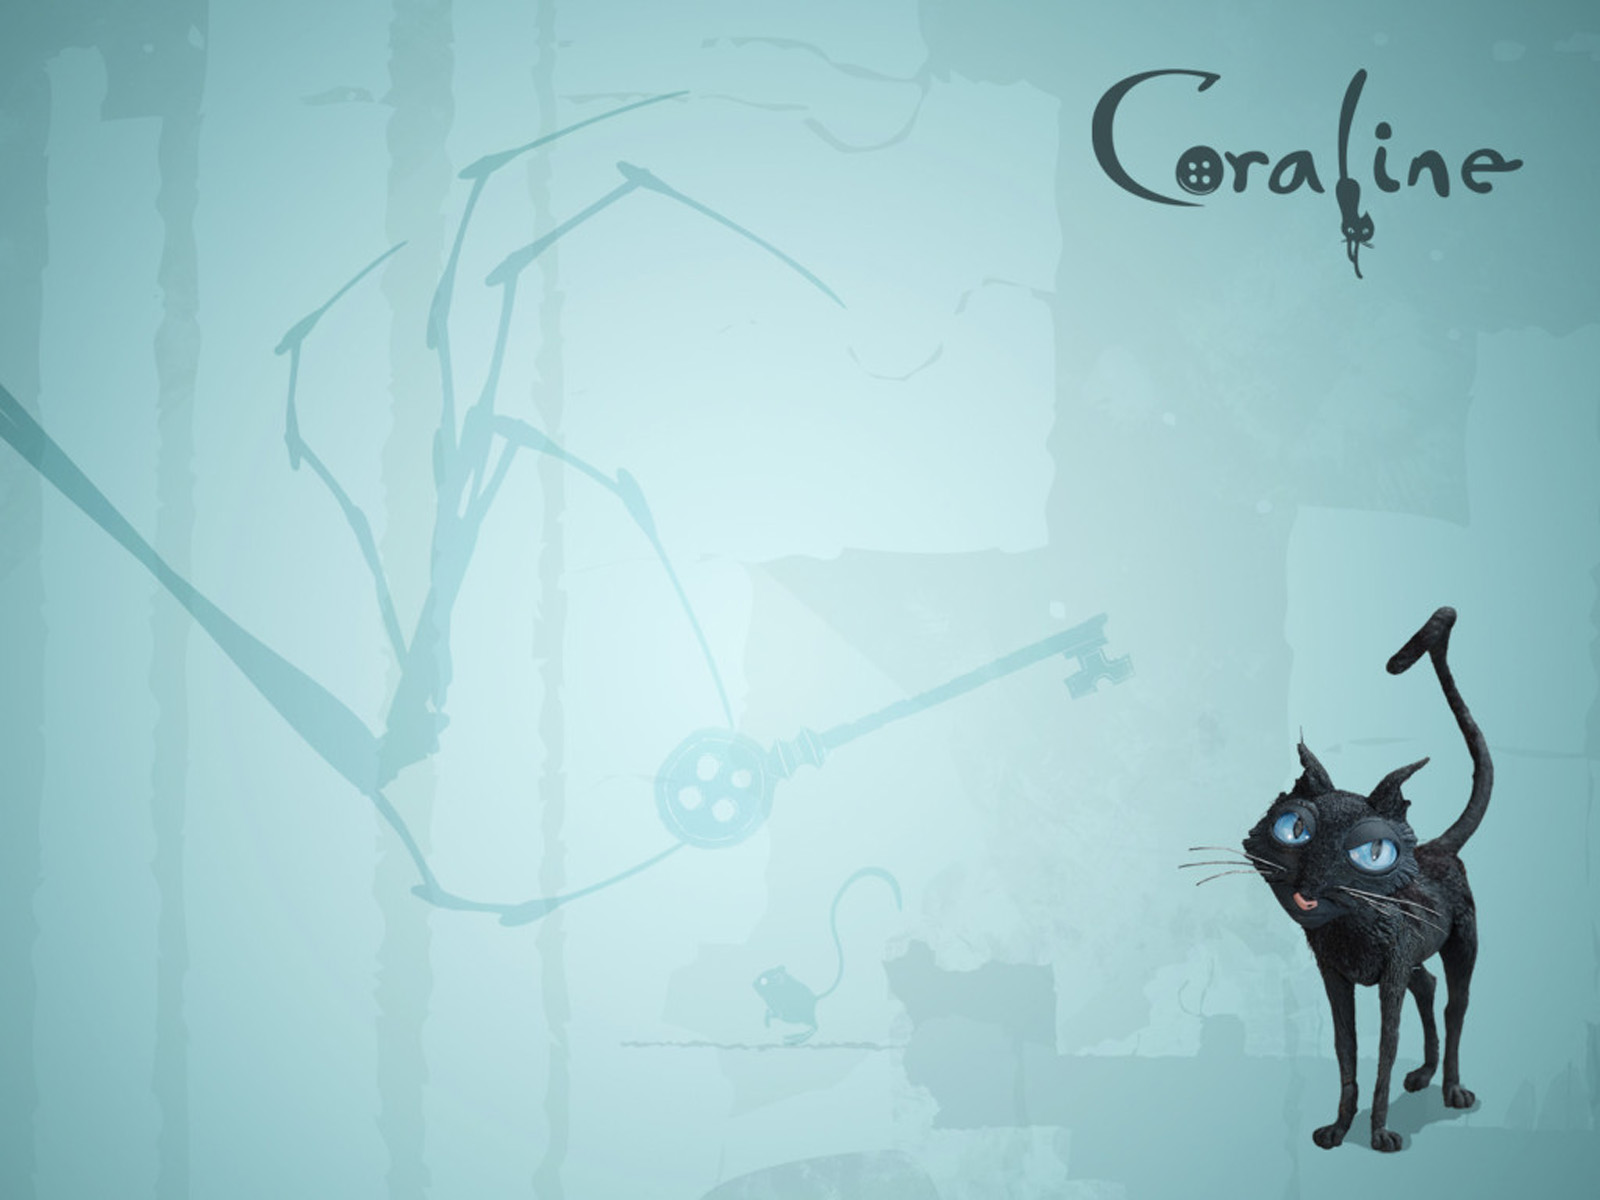 Tiger Cute Drawing Wallpaper Wallpapers Coraline Wallpapers